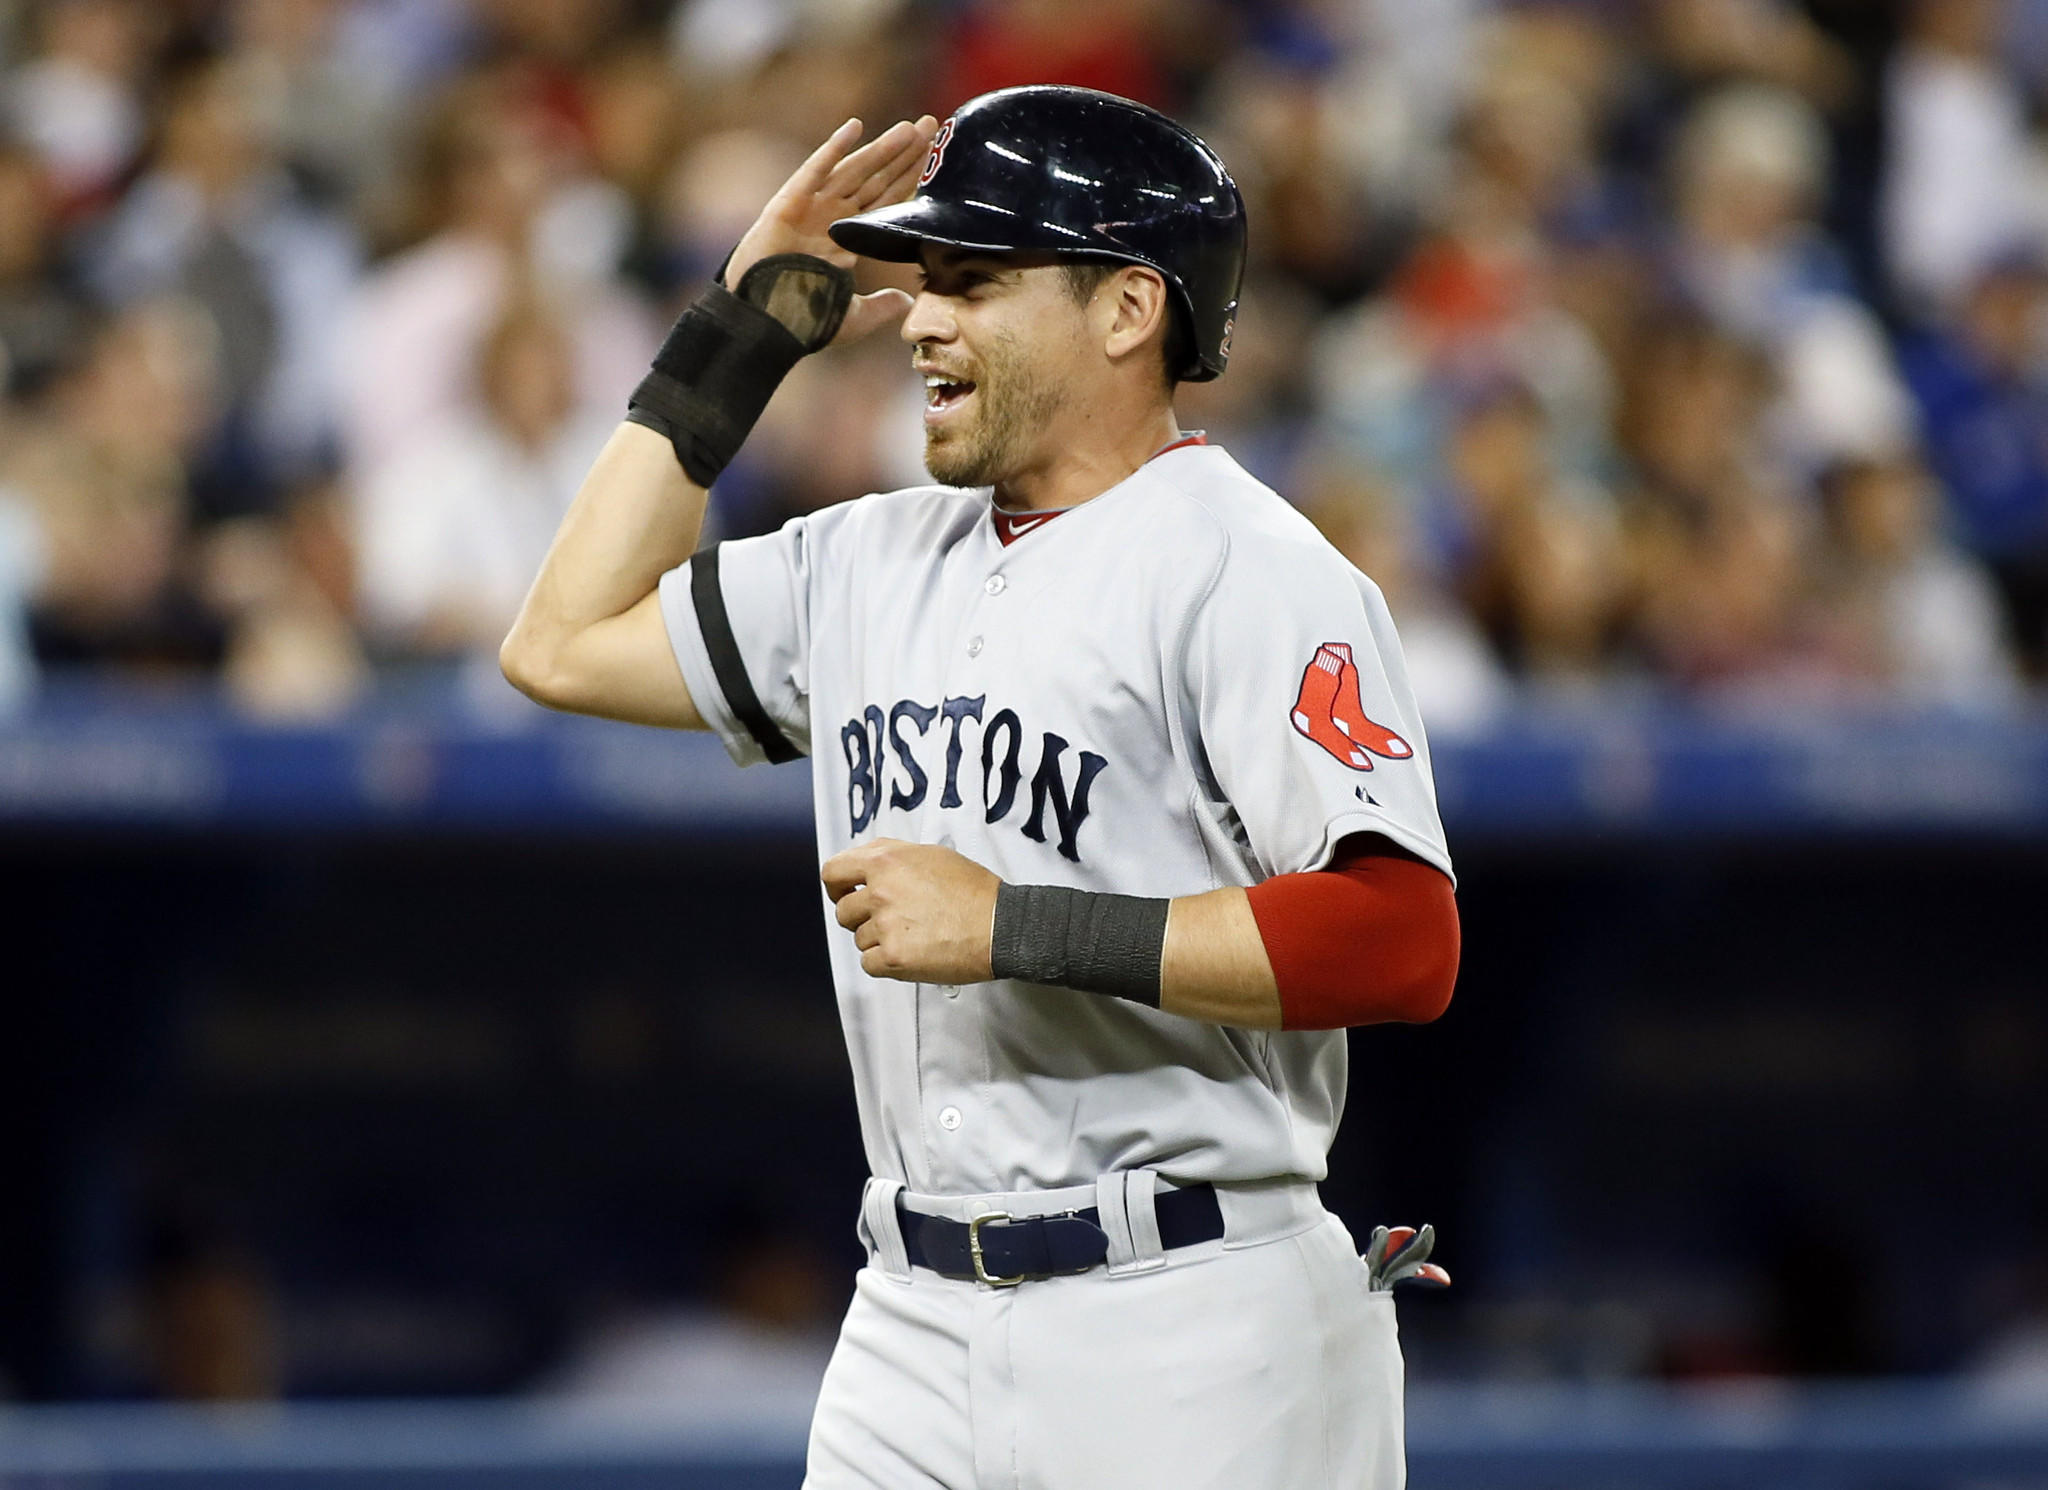 Red Sox center fielder Jacoby Ellsbury reacts after scoring a run in the seventh inning against the Blue Jays.